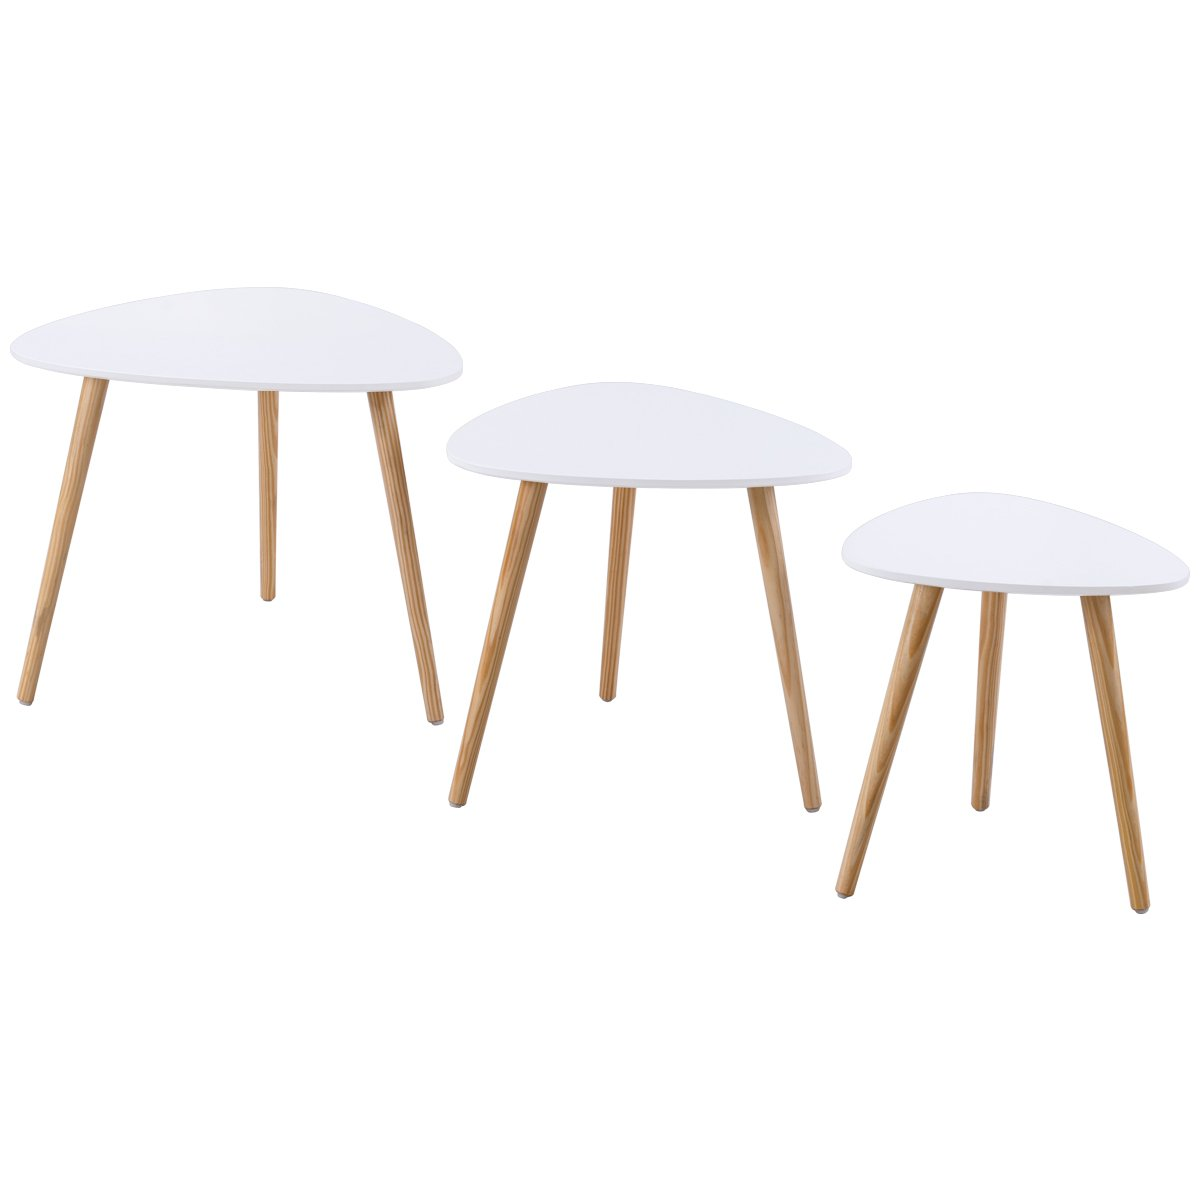 Giantex End Table Nesting Coffee Table Wood Sofa Side Table Accent End Tables w/Splayed Leg Set of 3 (White)